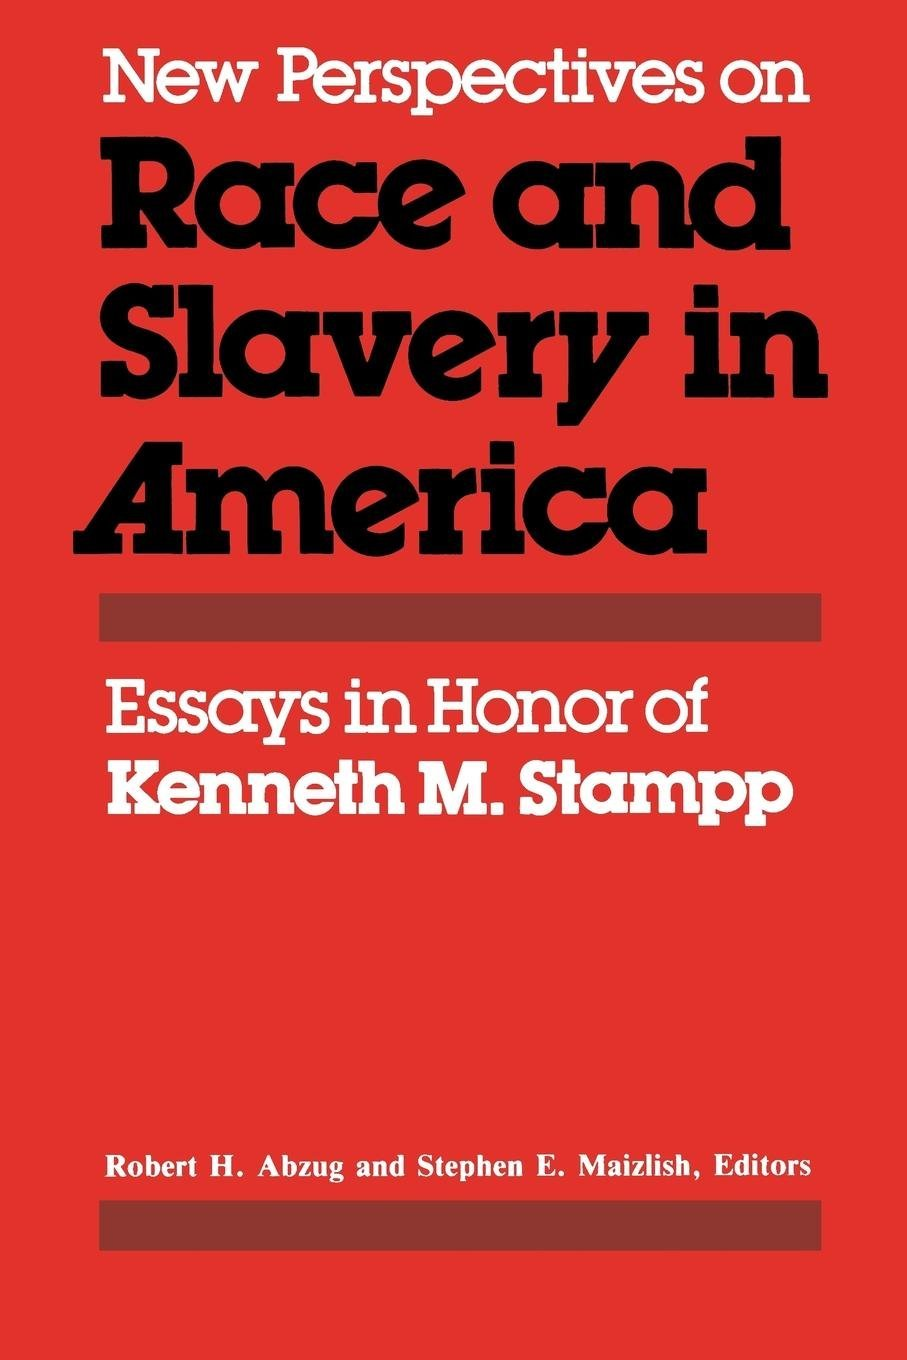 Compare And Contrast Essay Examples High School New Perspectives On Race And Slavery In America Essays In Honor Of Kenneth  M Stampp Robert H Abzug Stephen E Maizlish  Amazoncom   High School Vs College Essay Compare And Contrast also English Essays On Different Topics New Perspectives On Race And Slavery In America Essays In Honor Of  How To Write Essay Papers